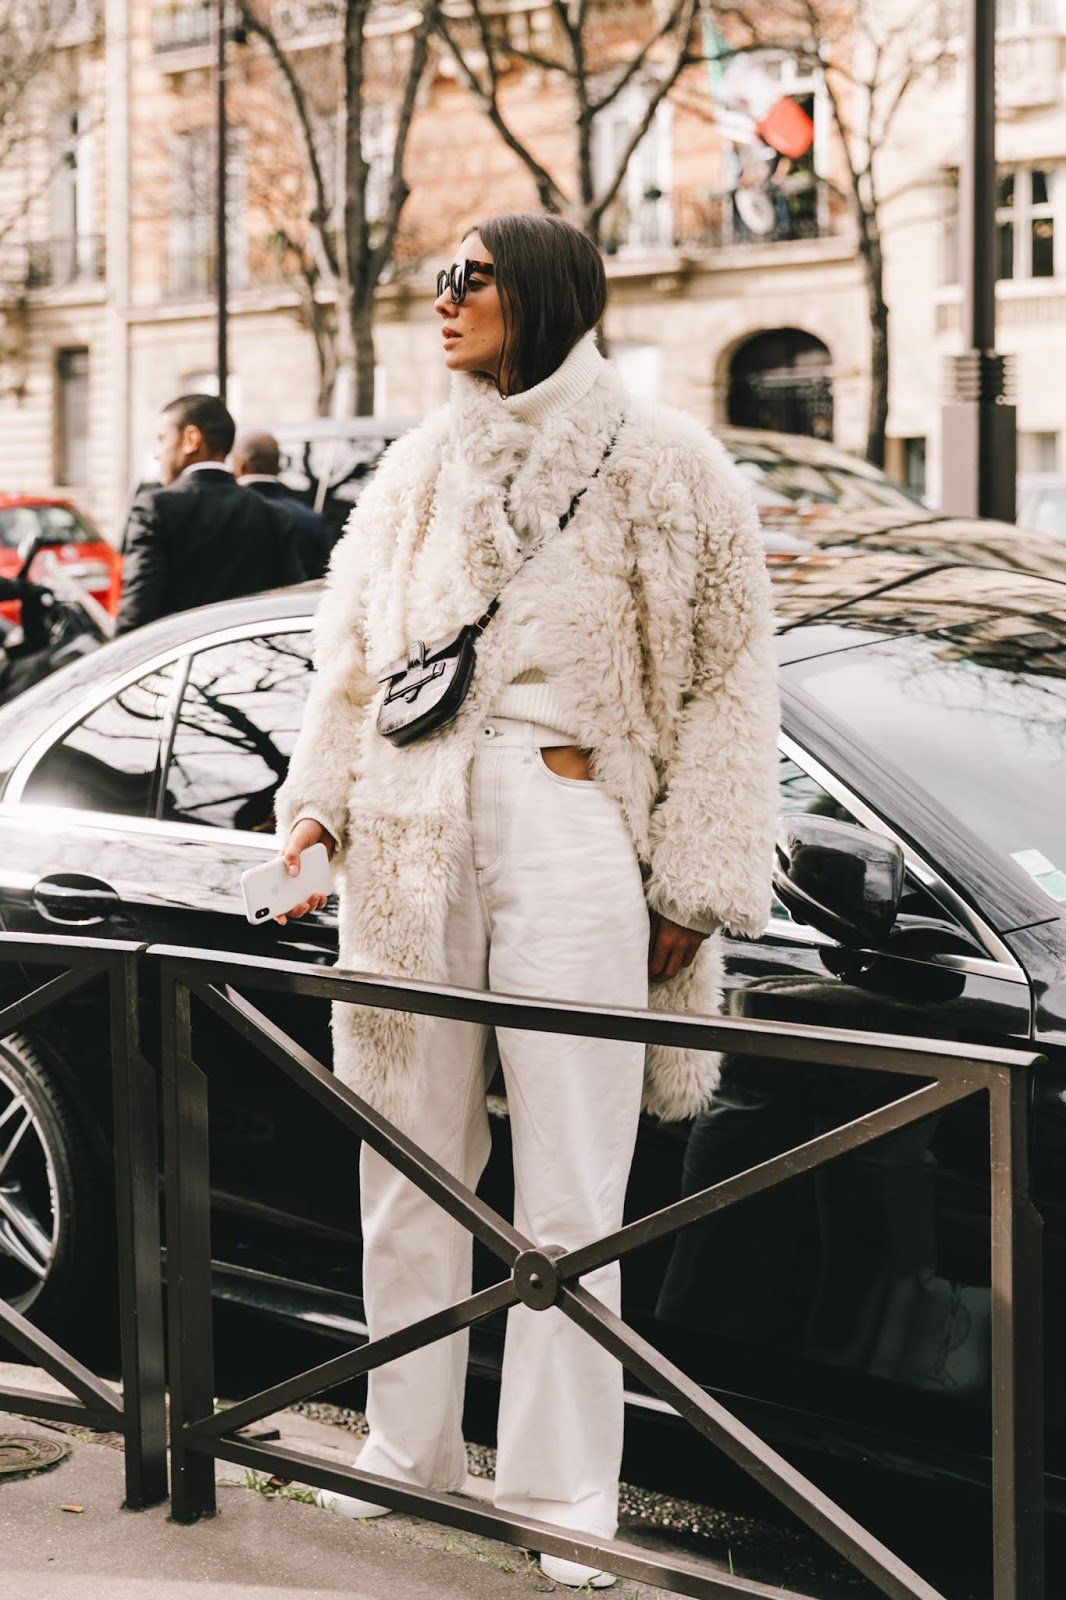 Parisian Neutrals: The Luxe PFW Look We Want to Recreate